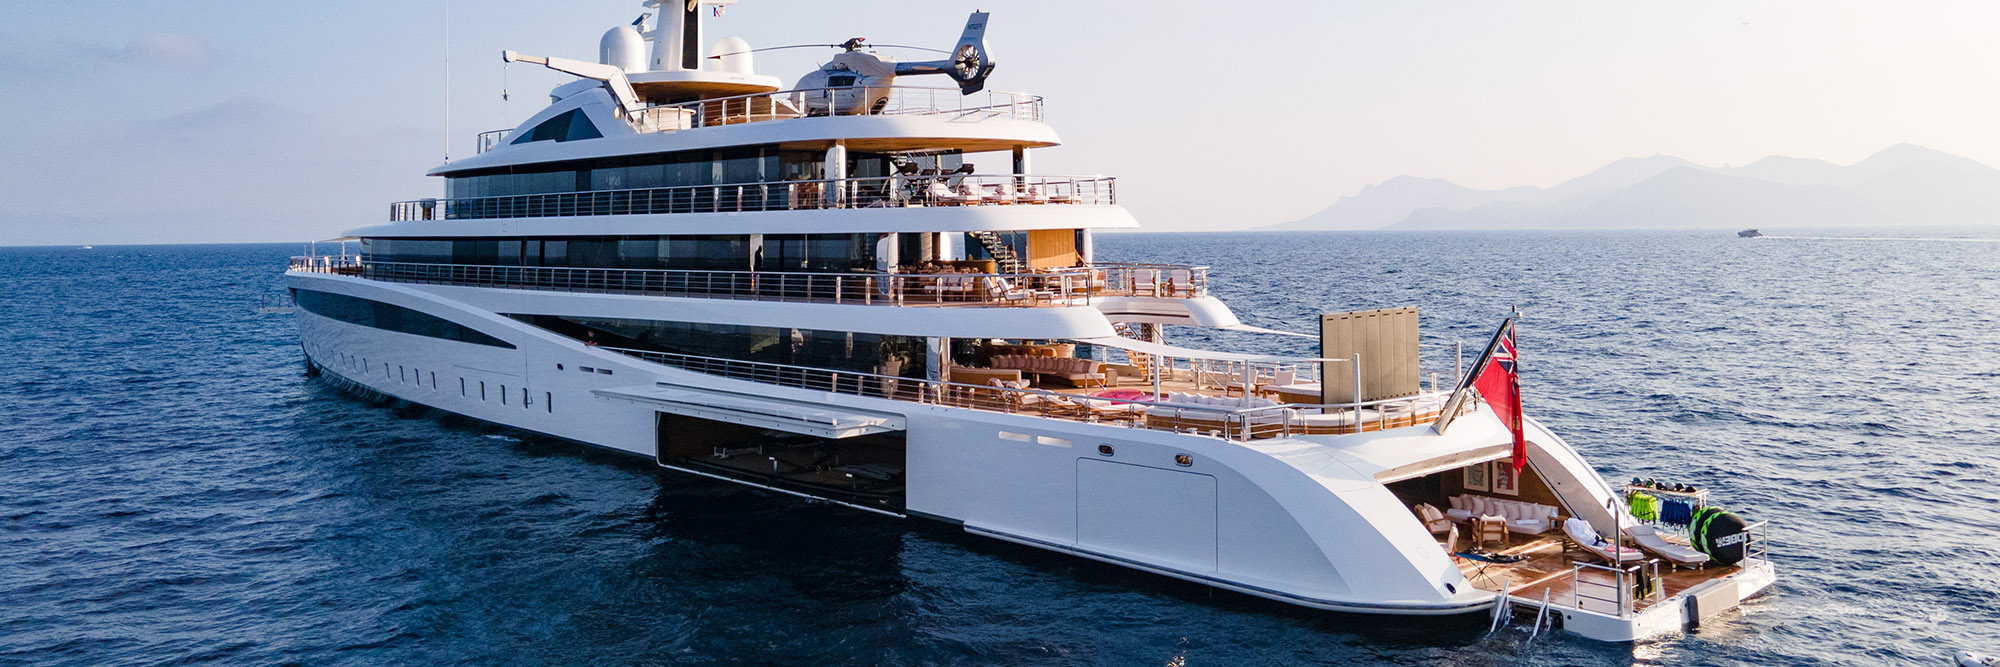 New Yachts for Sale - VIVA